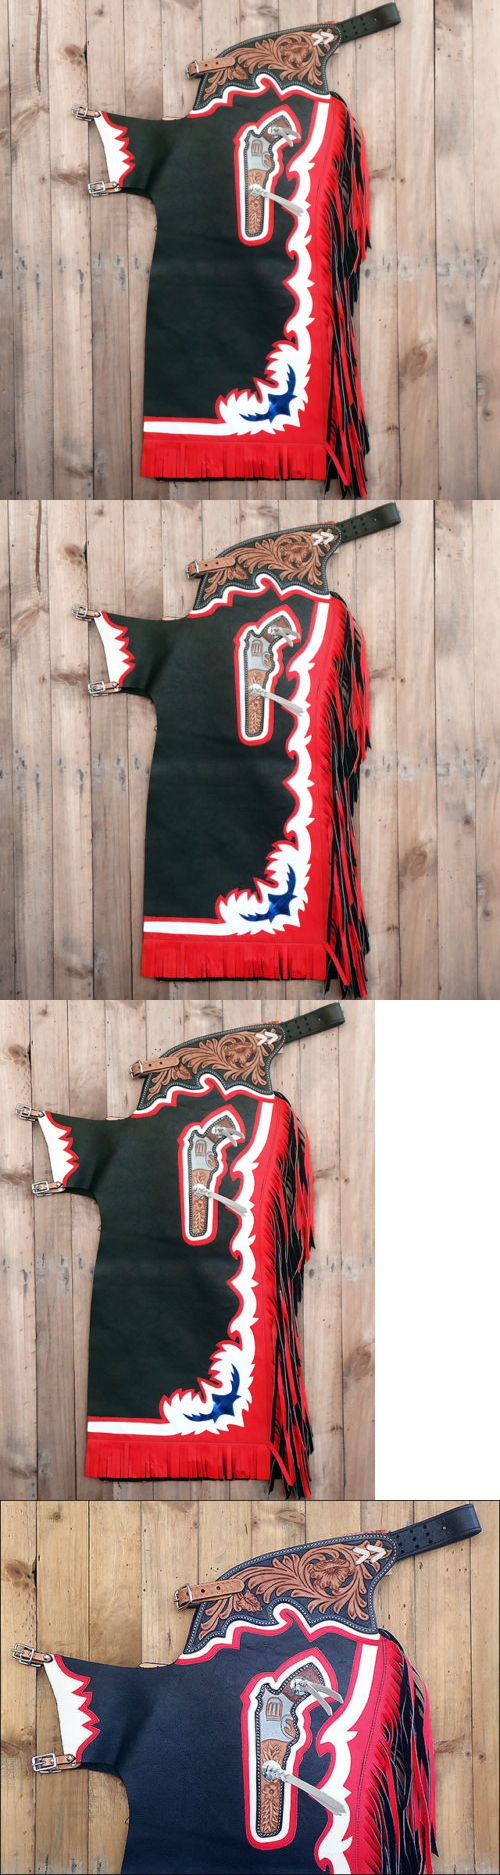 Western Chaps Full Chaps 183358: Ch815f- Hilason Bull Riding Genuine Leather Pro Rodeo Western Chaps Black -> BUY IT NOW ONLY: $198.99 on eBay!